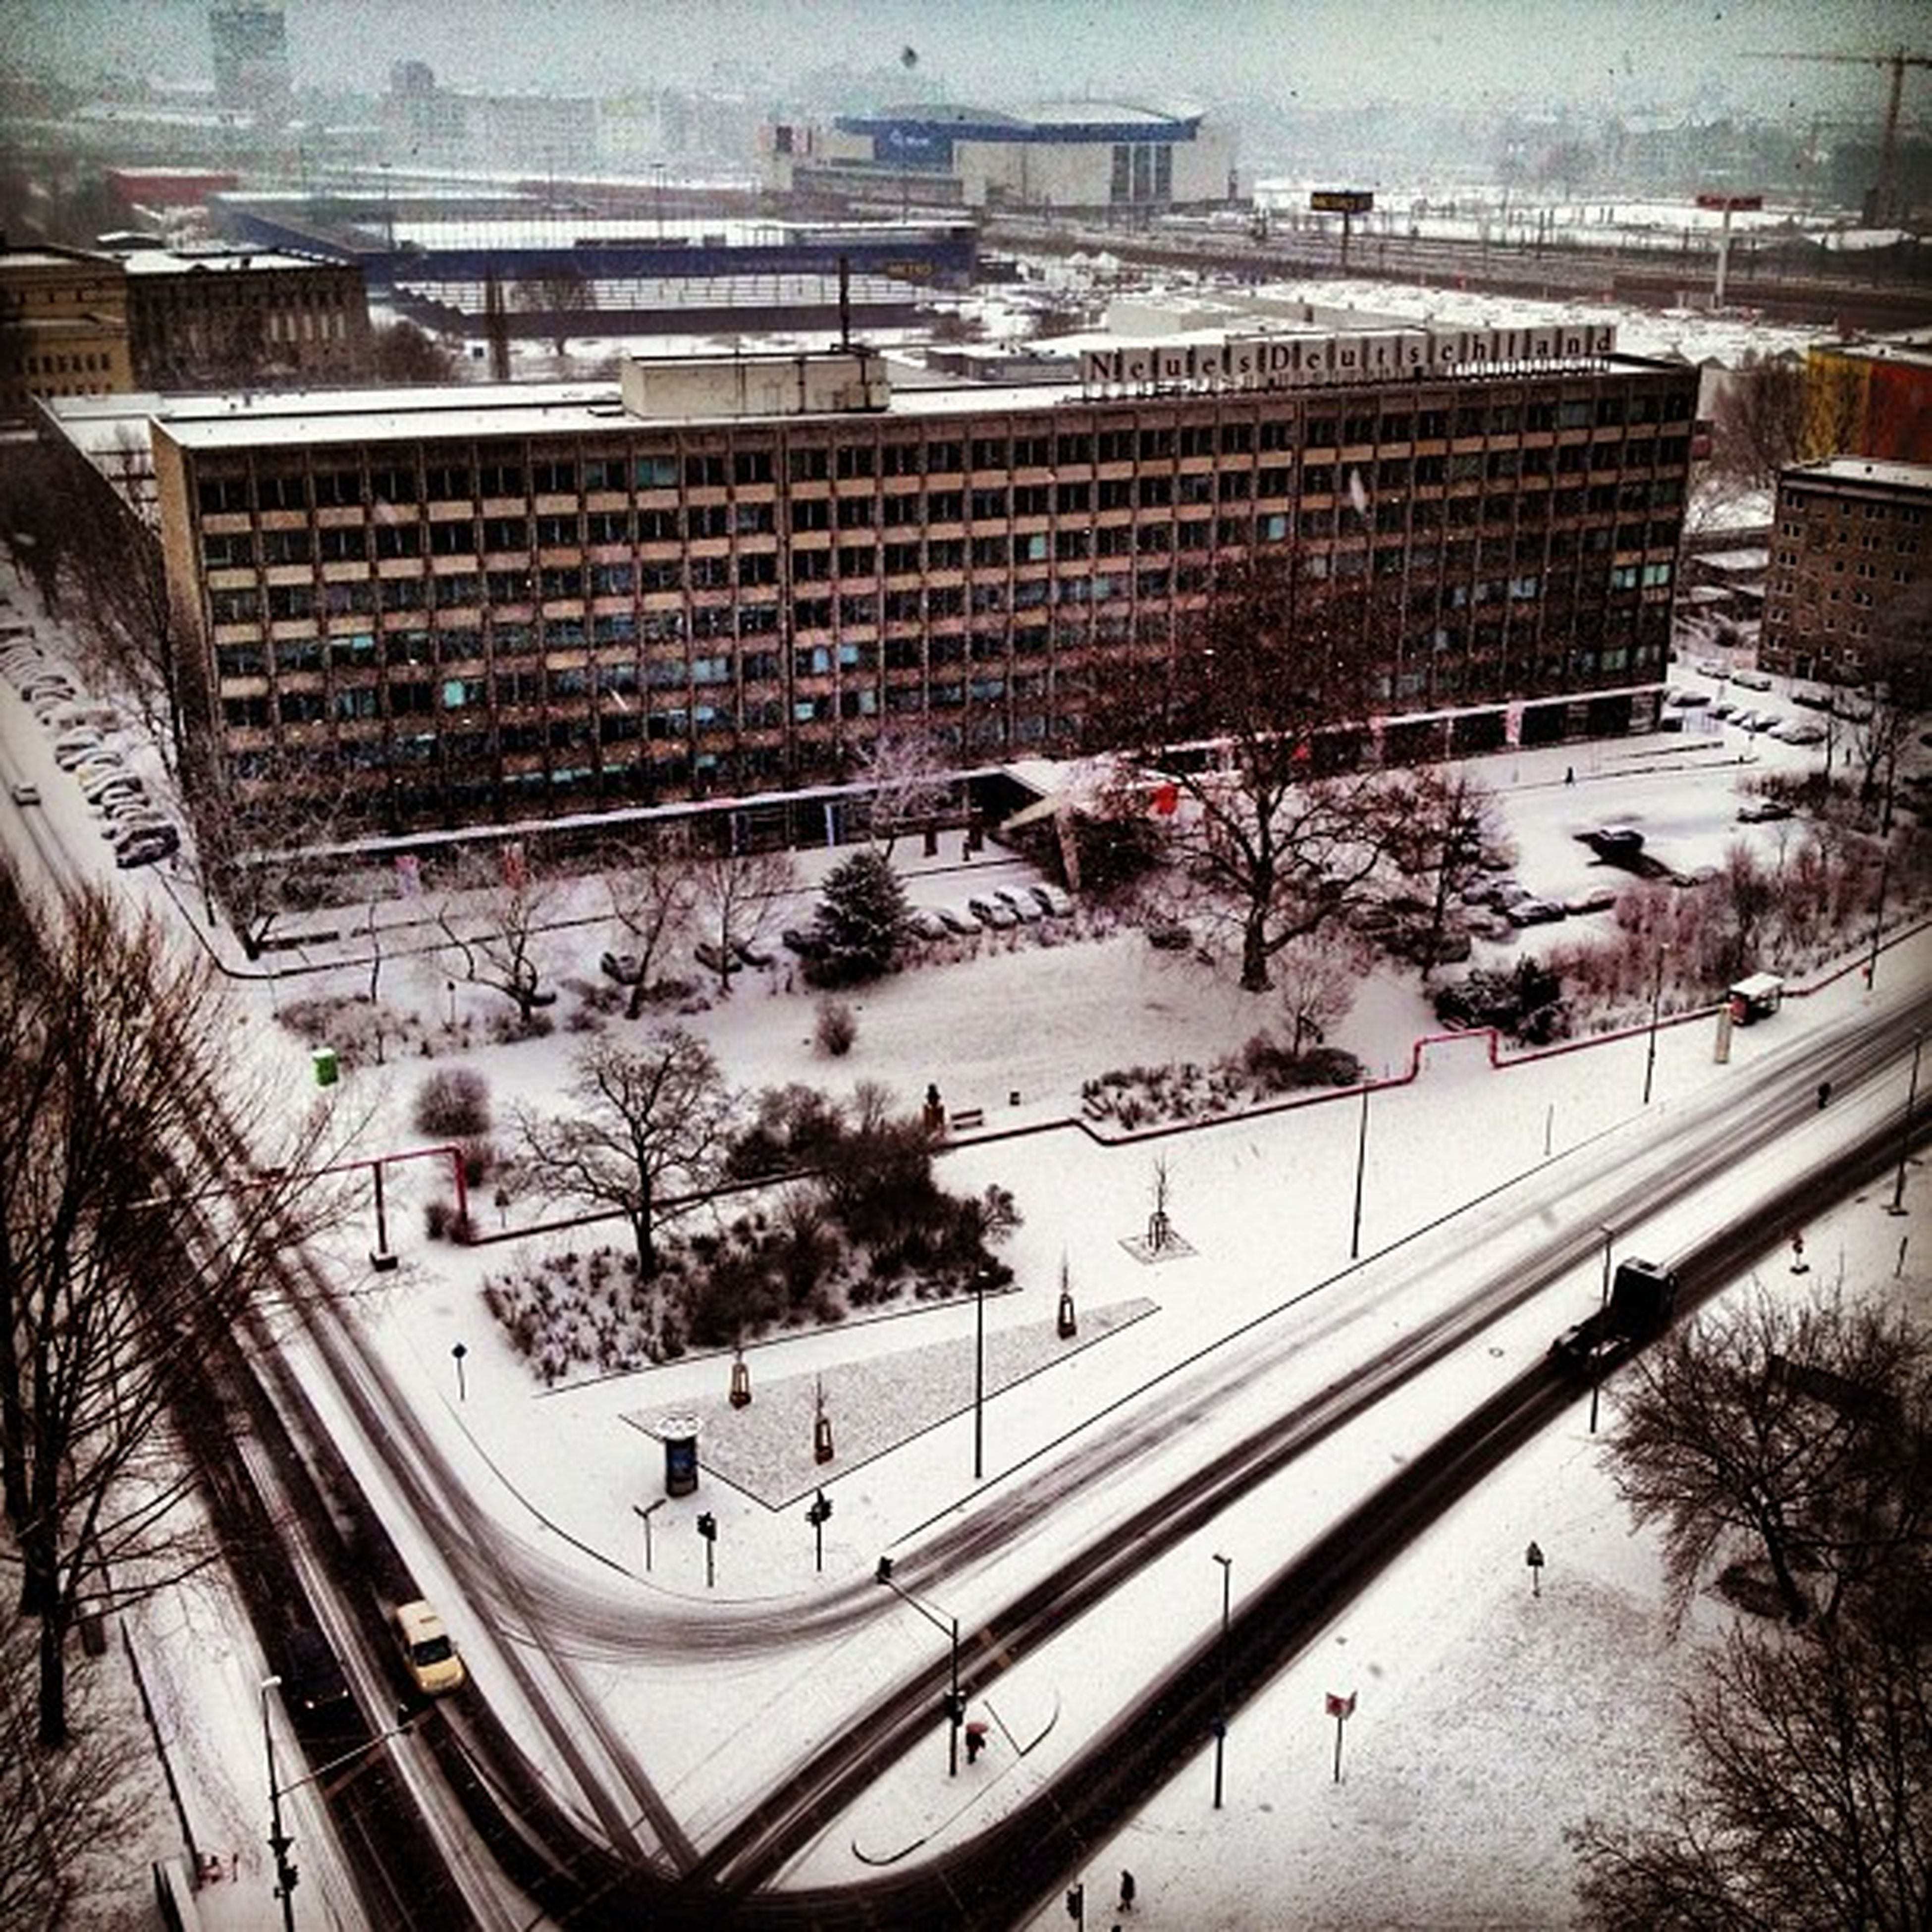 snow, winter, cold temperature, architecture, season, high angle view, built structure, building exterior, transportation, large group of people, weather, city, covering, city life, mode of transport, car, street, road, land vehicle